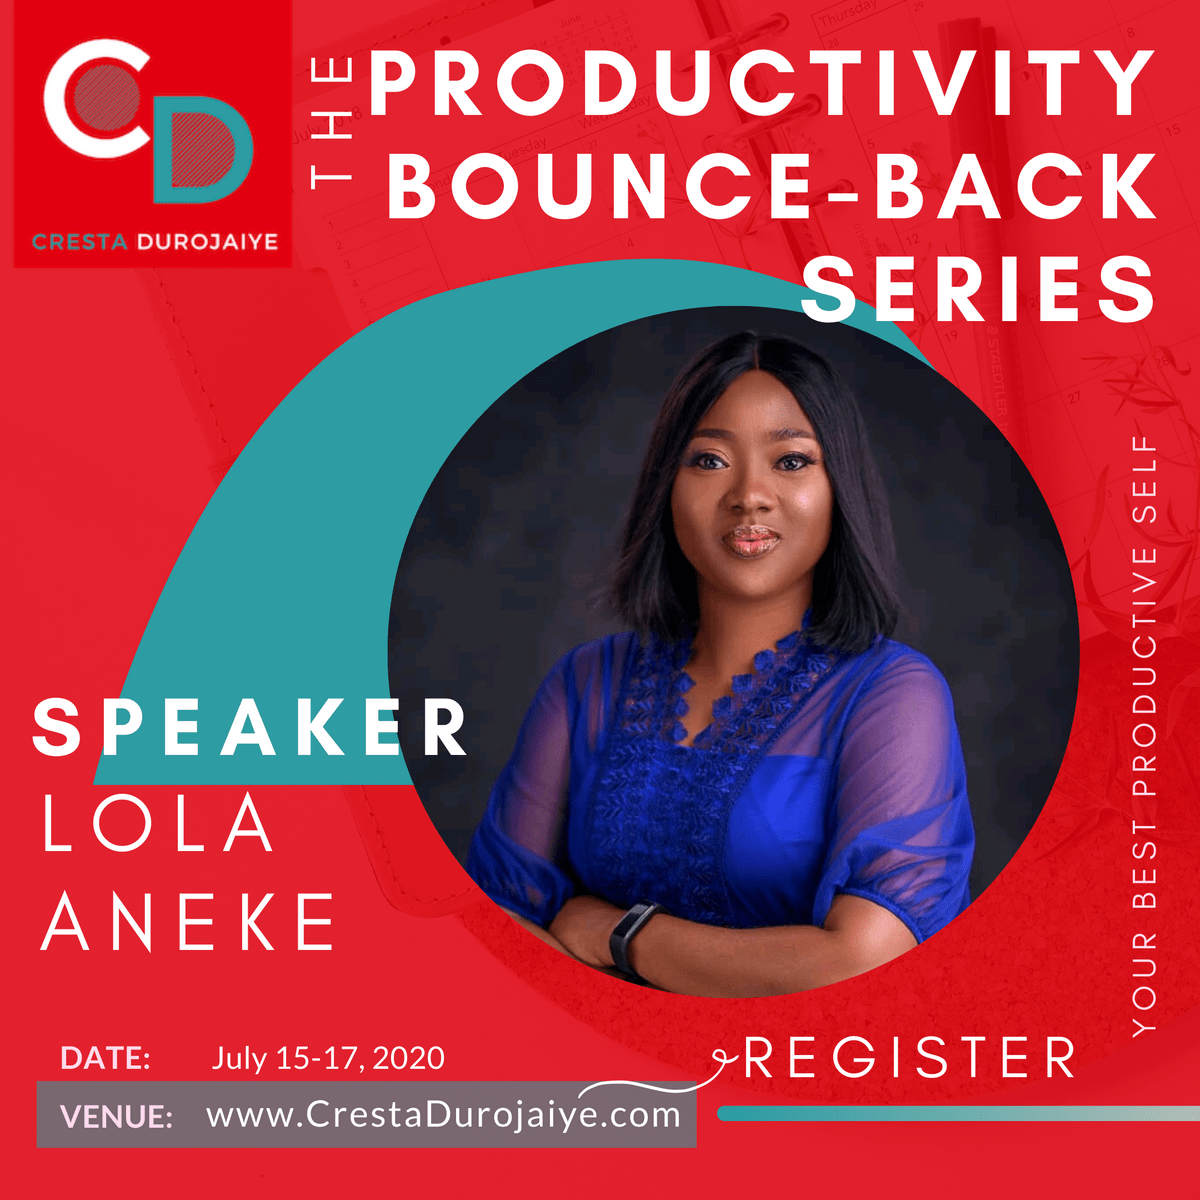 Lola Aneke is speaking at The Productivity Bounce Back Series